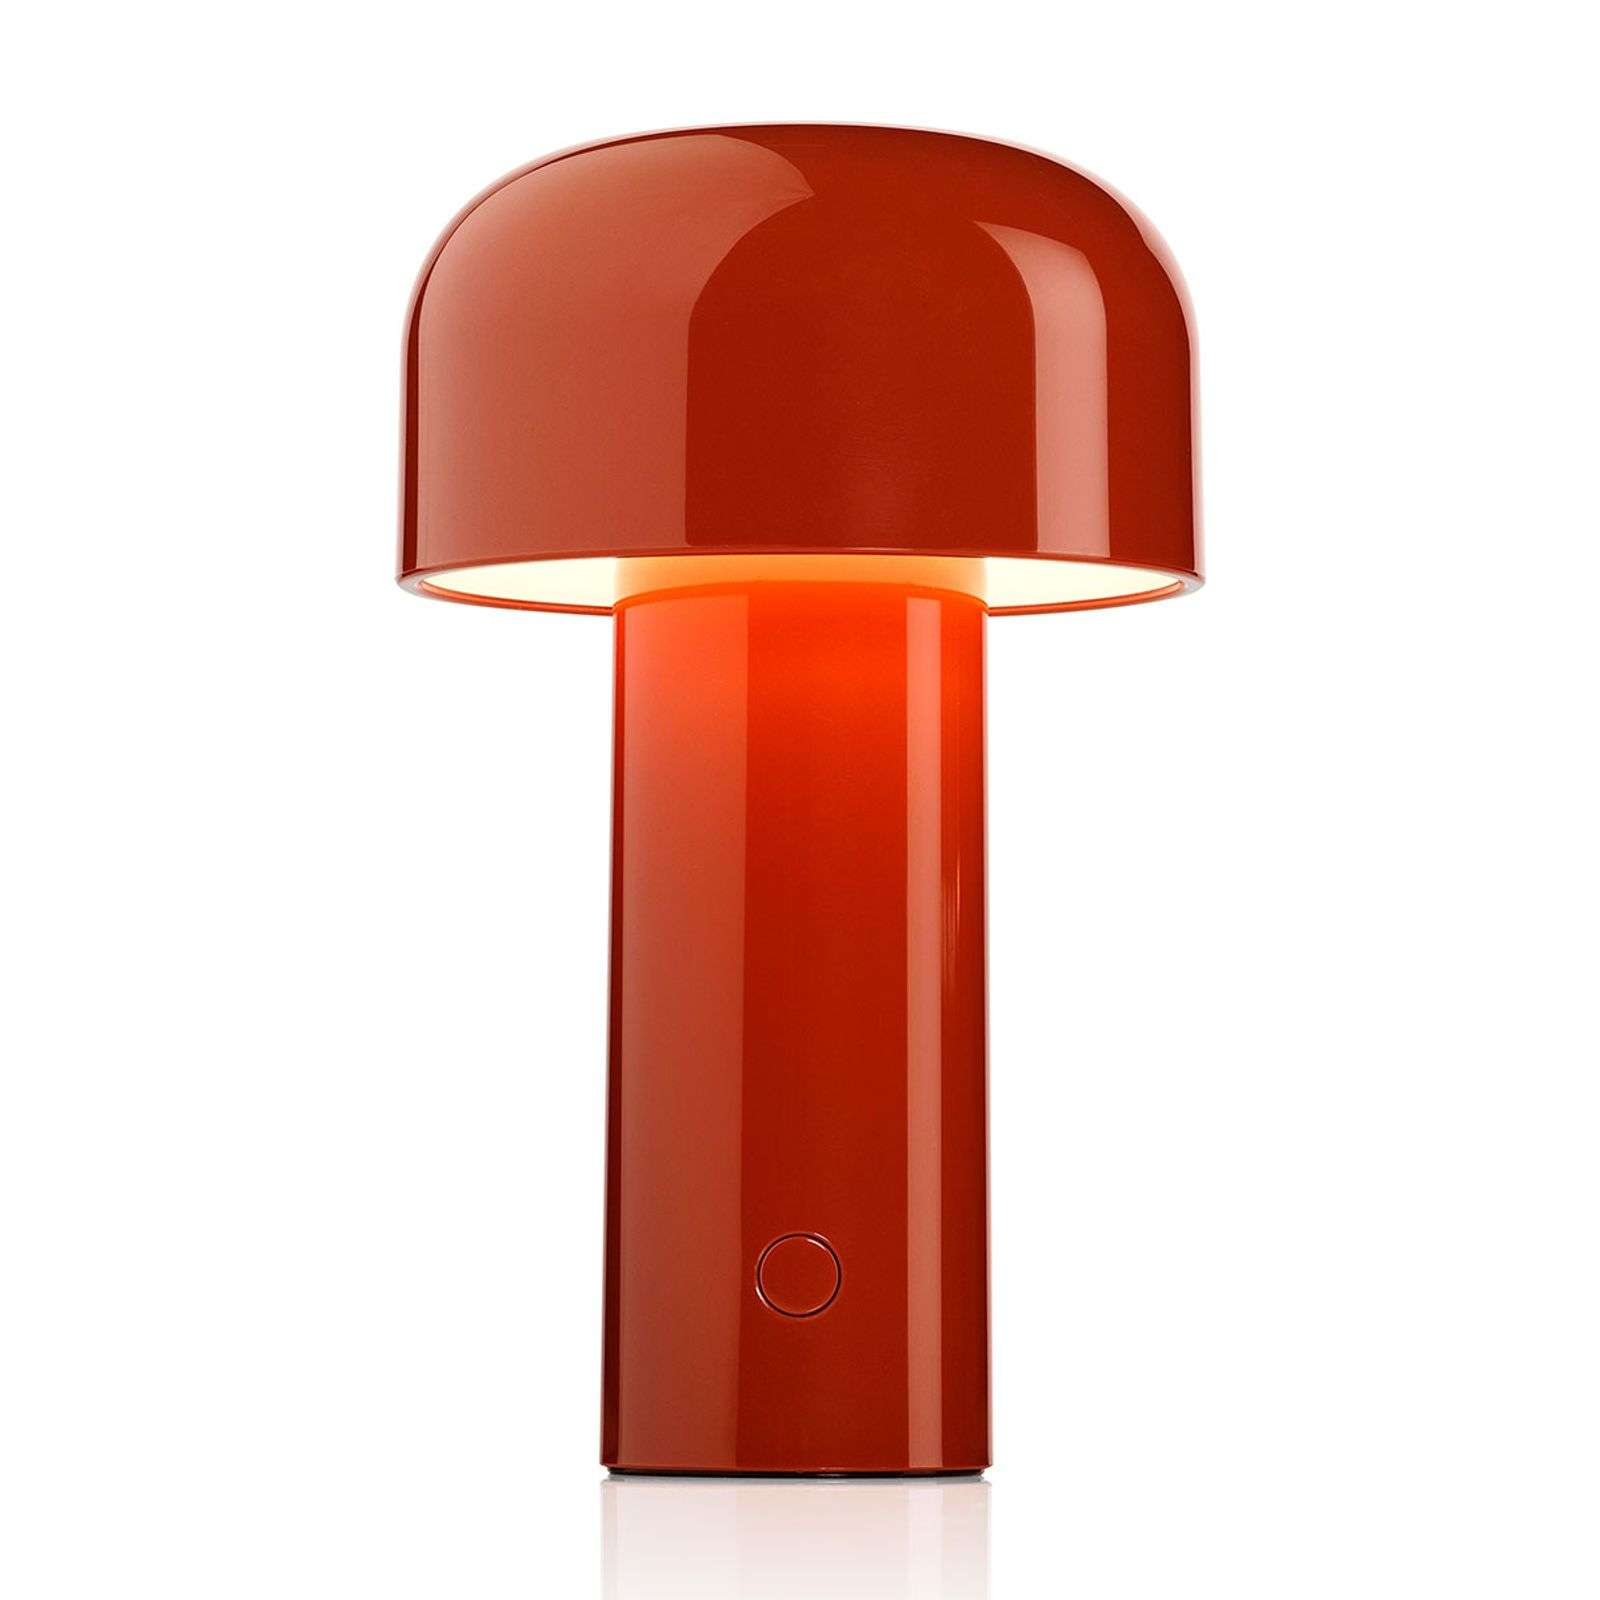 FLOS Bellhop lampe à poser LED rouge brique